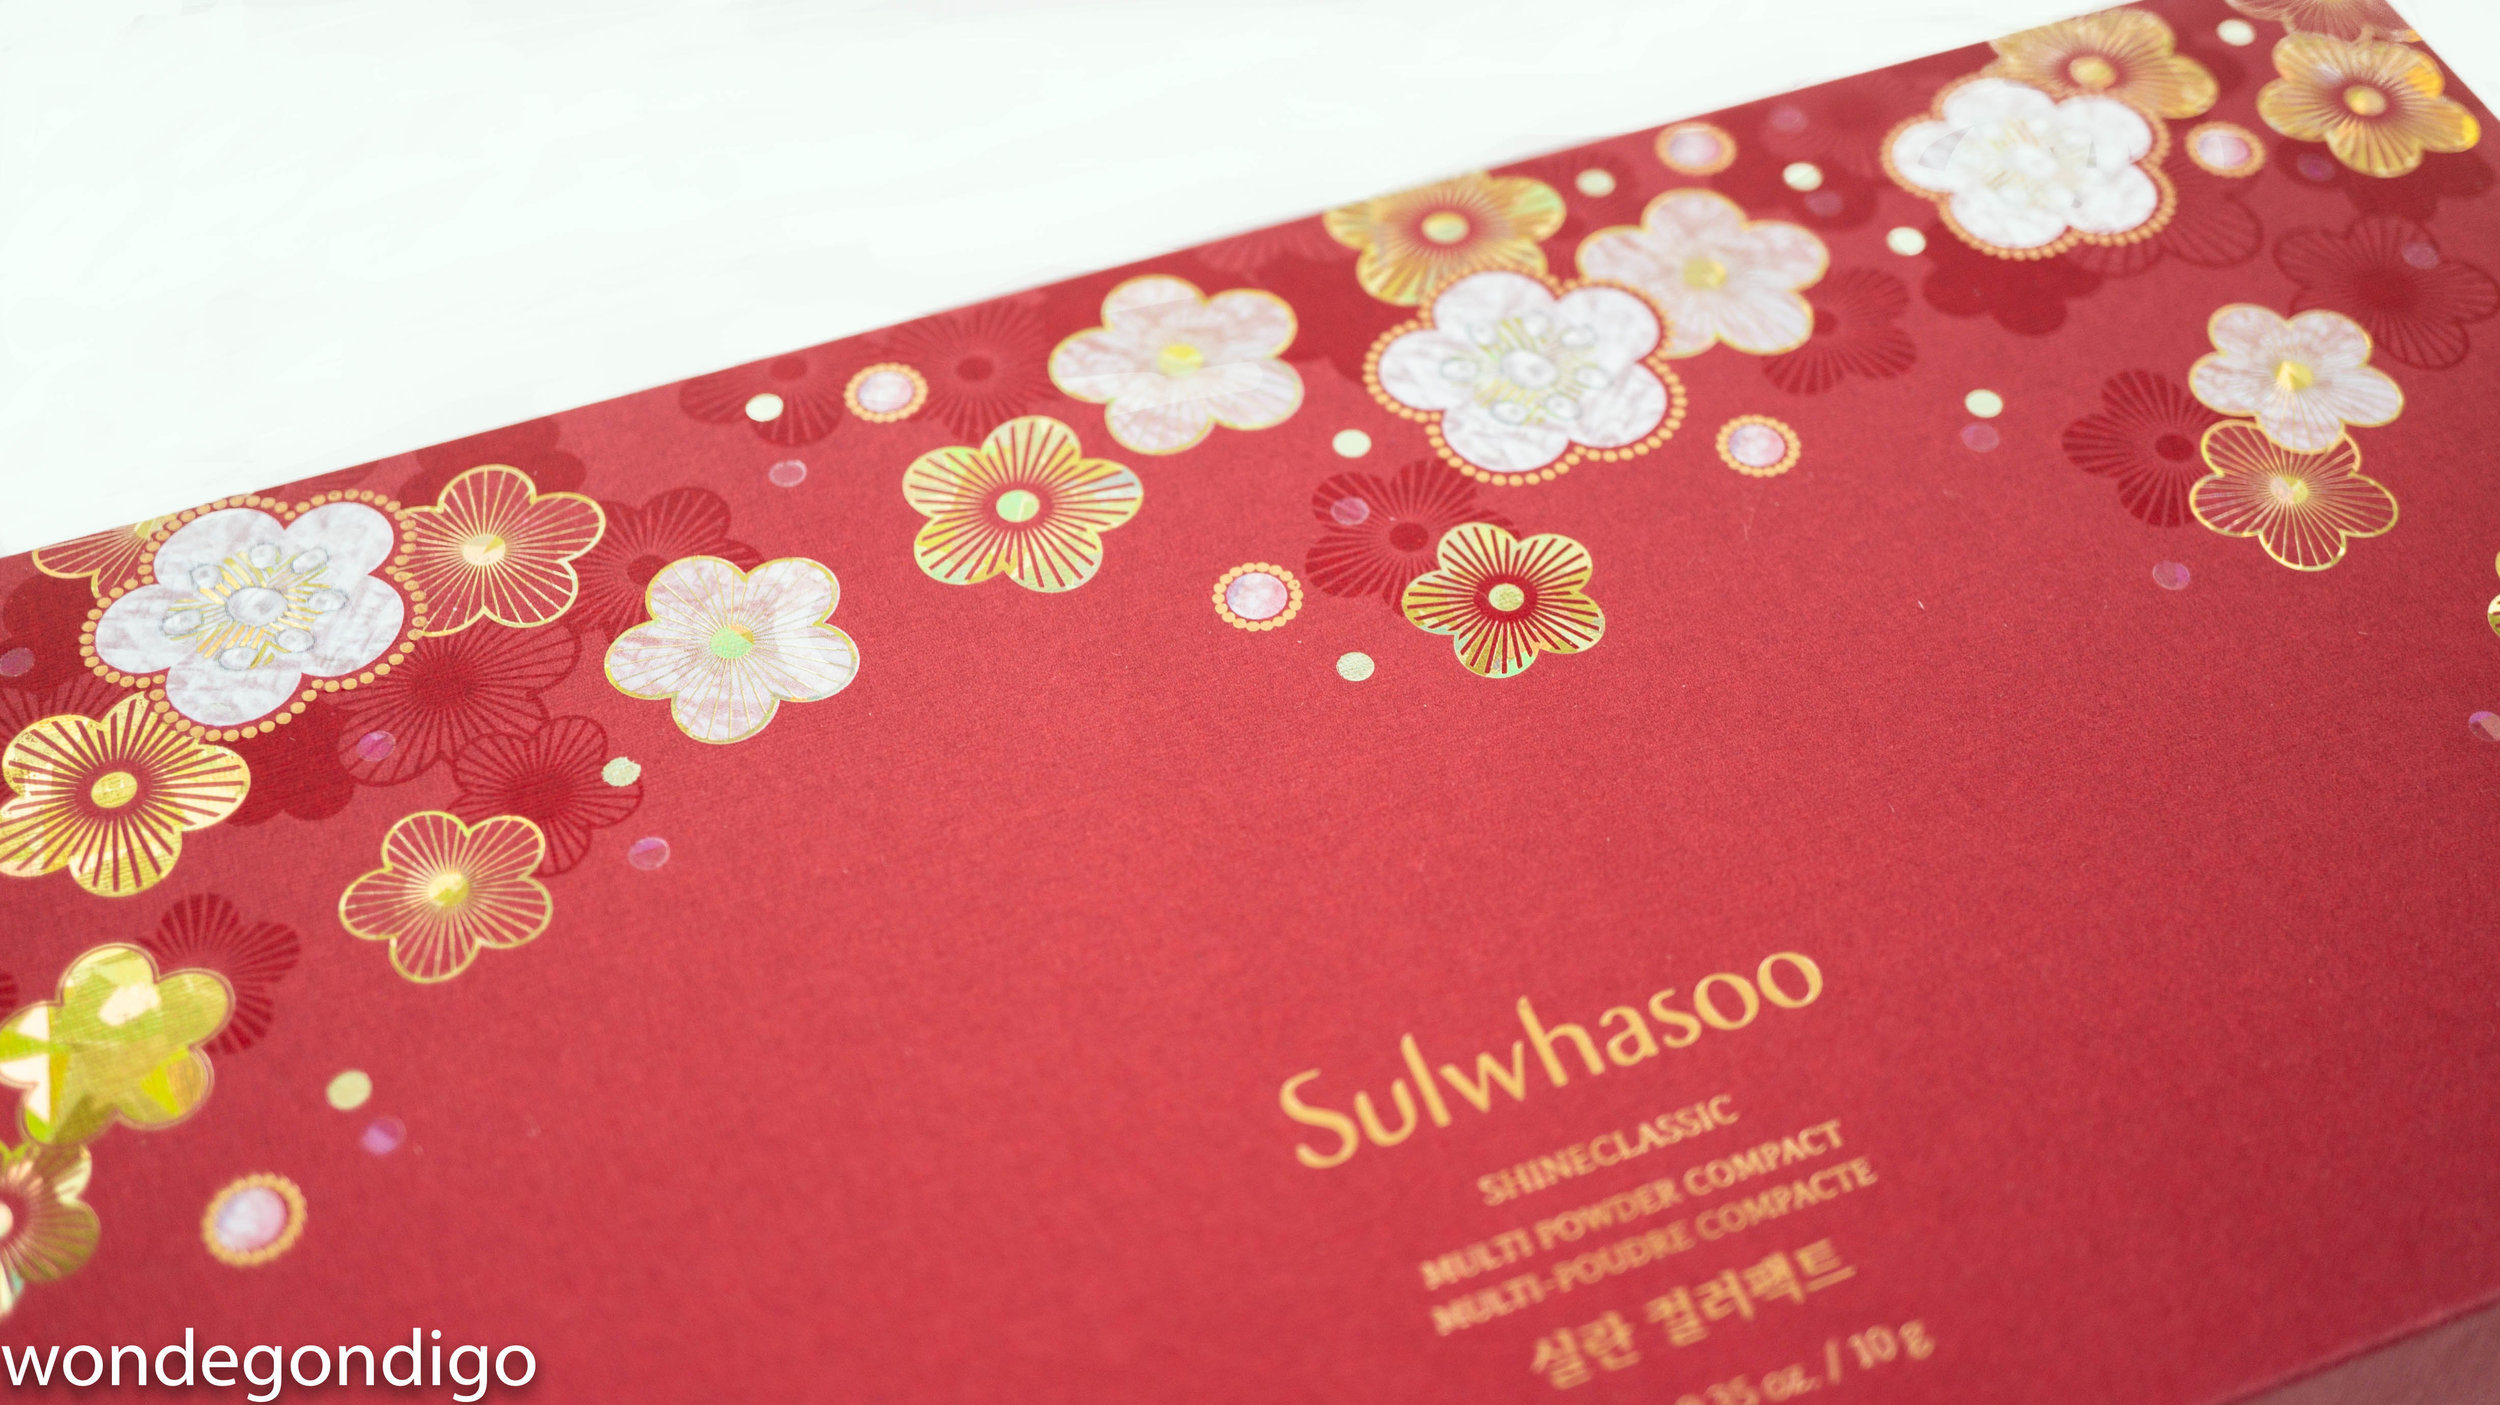 The floral motif reminiscent of traditional mother of pearl inlay